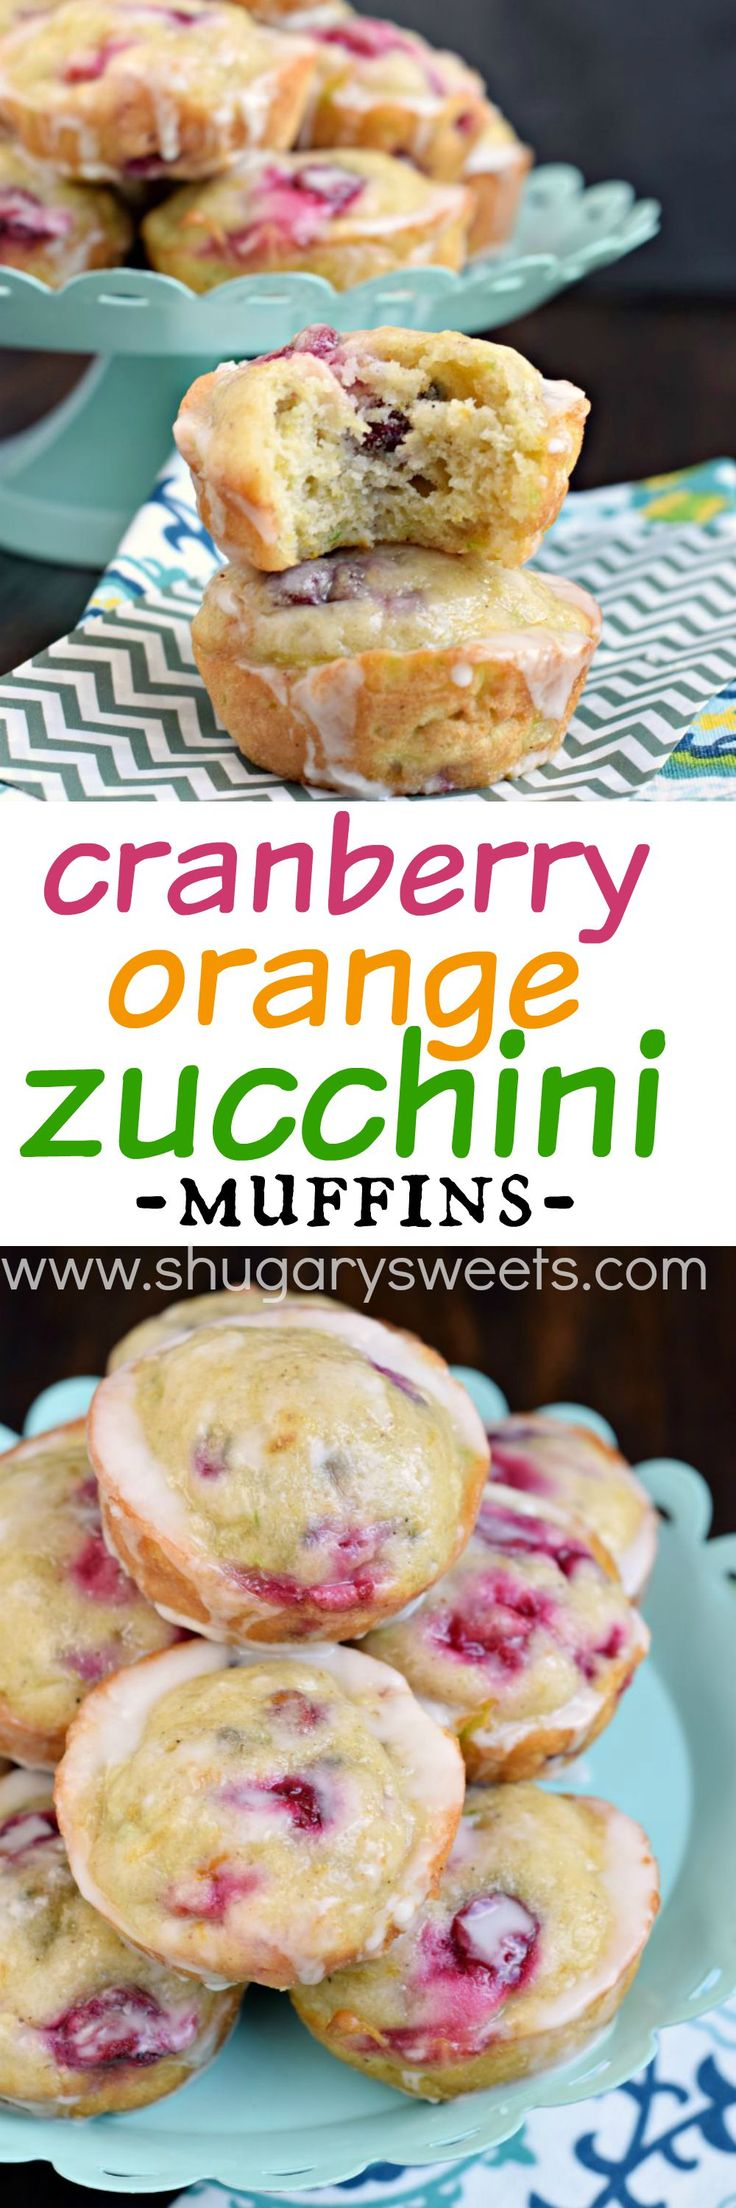 Cranberry Orange Zucchini Muffins | Shugary Sweets |  are packed with flavor! And that orange glaze is a perfect finish!